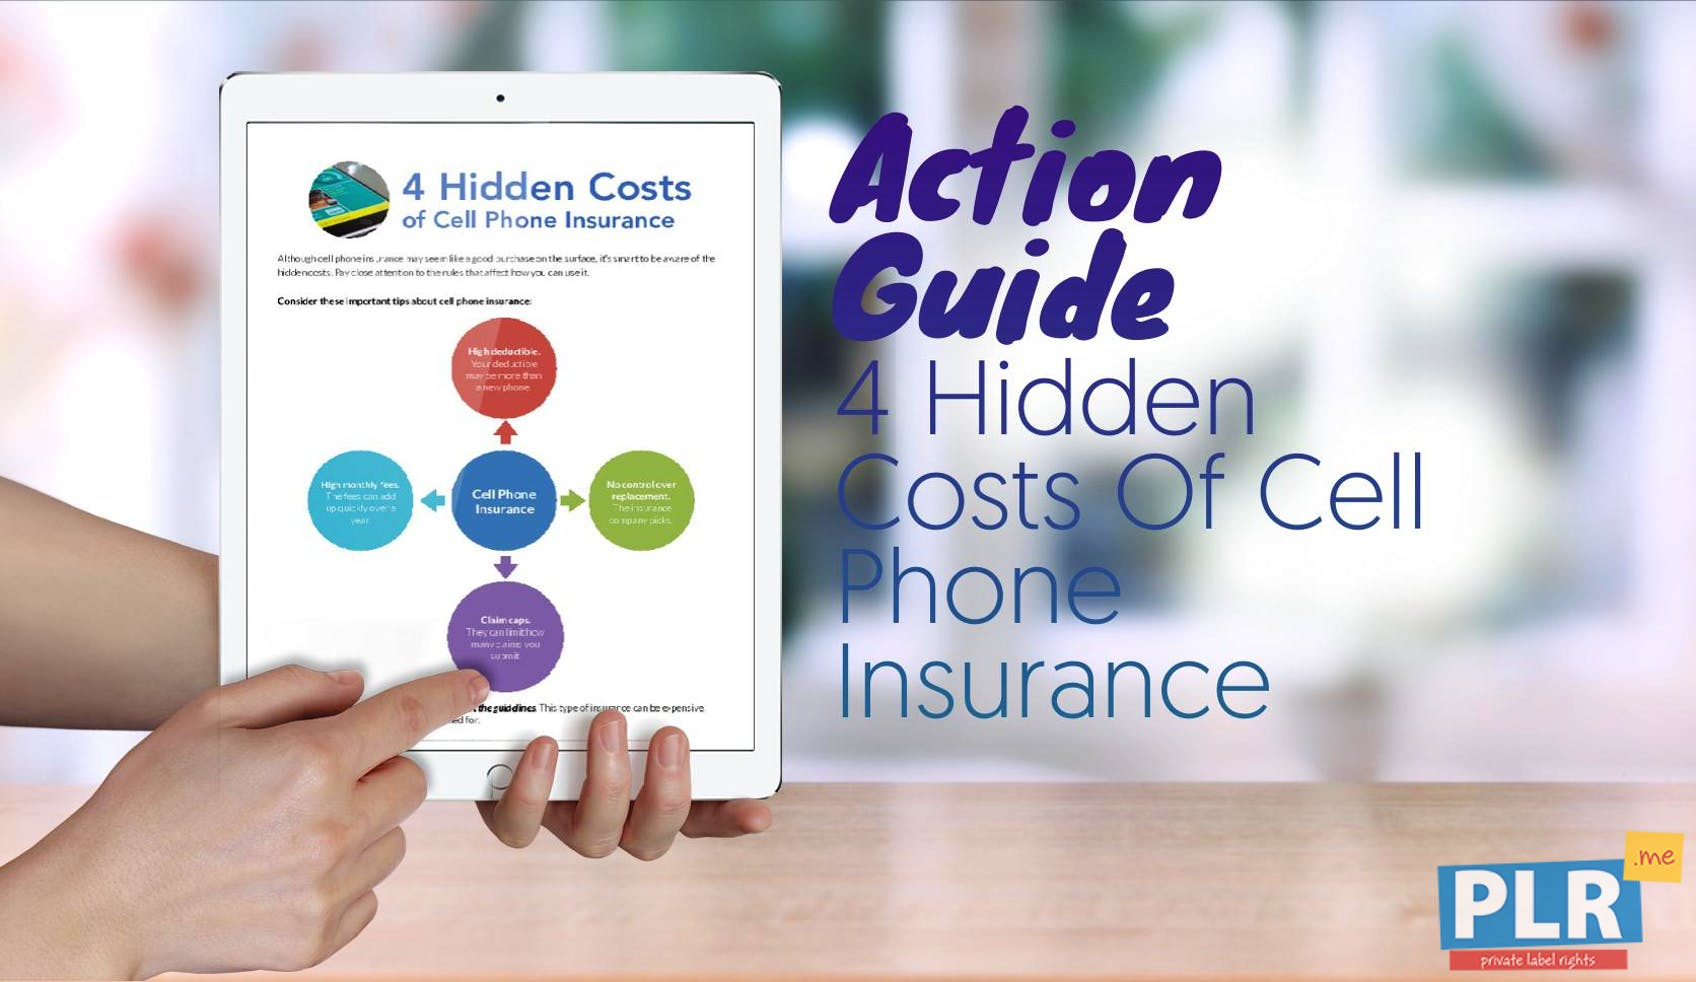 4 Hidden Costs Of Cell Phone Insurance